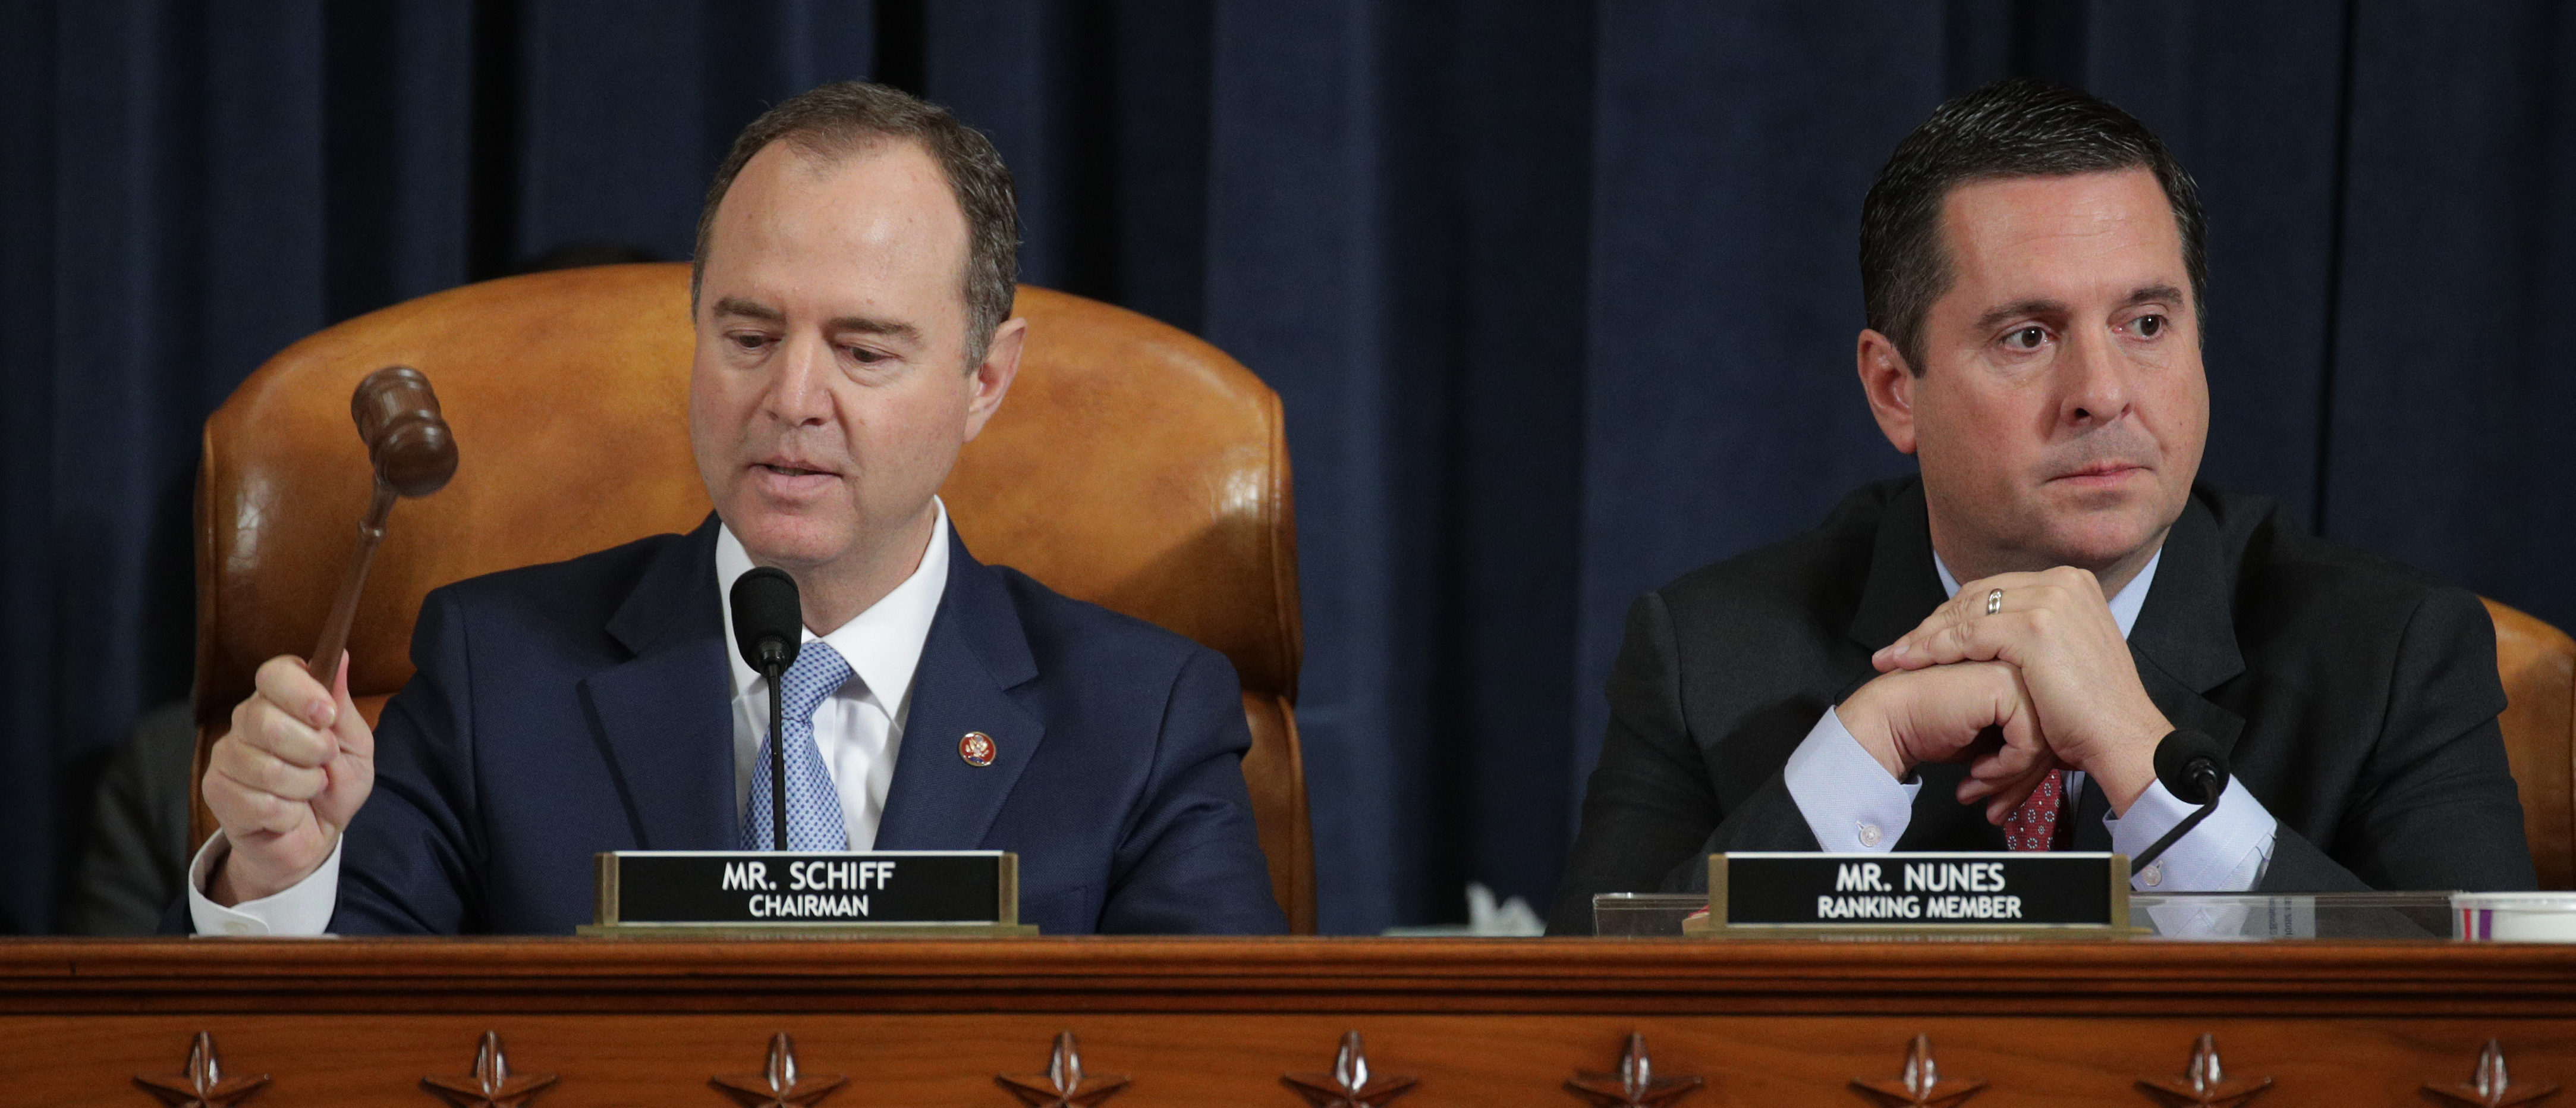 WASHINGTON, DC - NOVEMBER 15: Committee Chairman Rep. Adam Schiff (D-CA) (L) speaks while ranking member Devin Nunes looks on during the testimony of former U.S. Ambassador to Ukraine Marie Yovanovitch's before the House Intelligence Committee in the Longworth House Office Building on Capitol Hill November 15, 2019 in Washington, DC. In the second impeachment hearing held by the committee, House Democrats continue to build a case against U.S. President Donald Trump's efforts to link U.S. military aid for Ukraine to the nation's investigation of his political rivals. (Photo by Alex Wong/Getty Images)